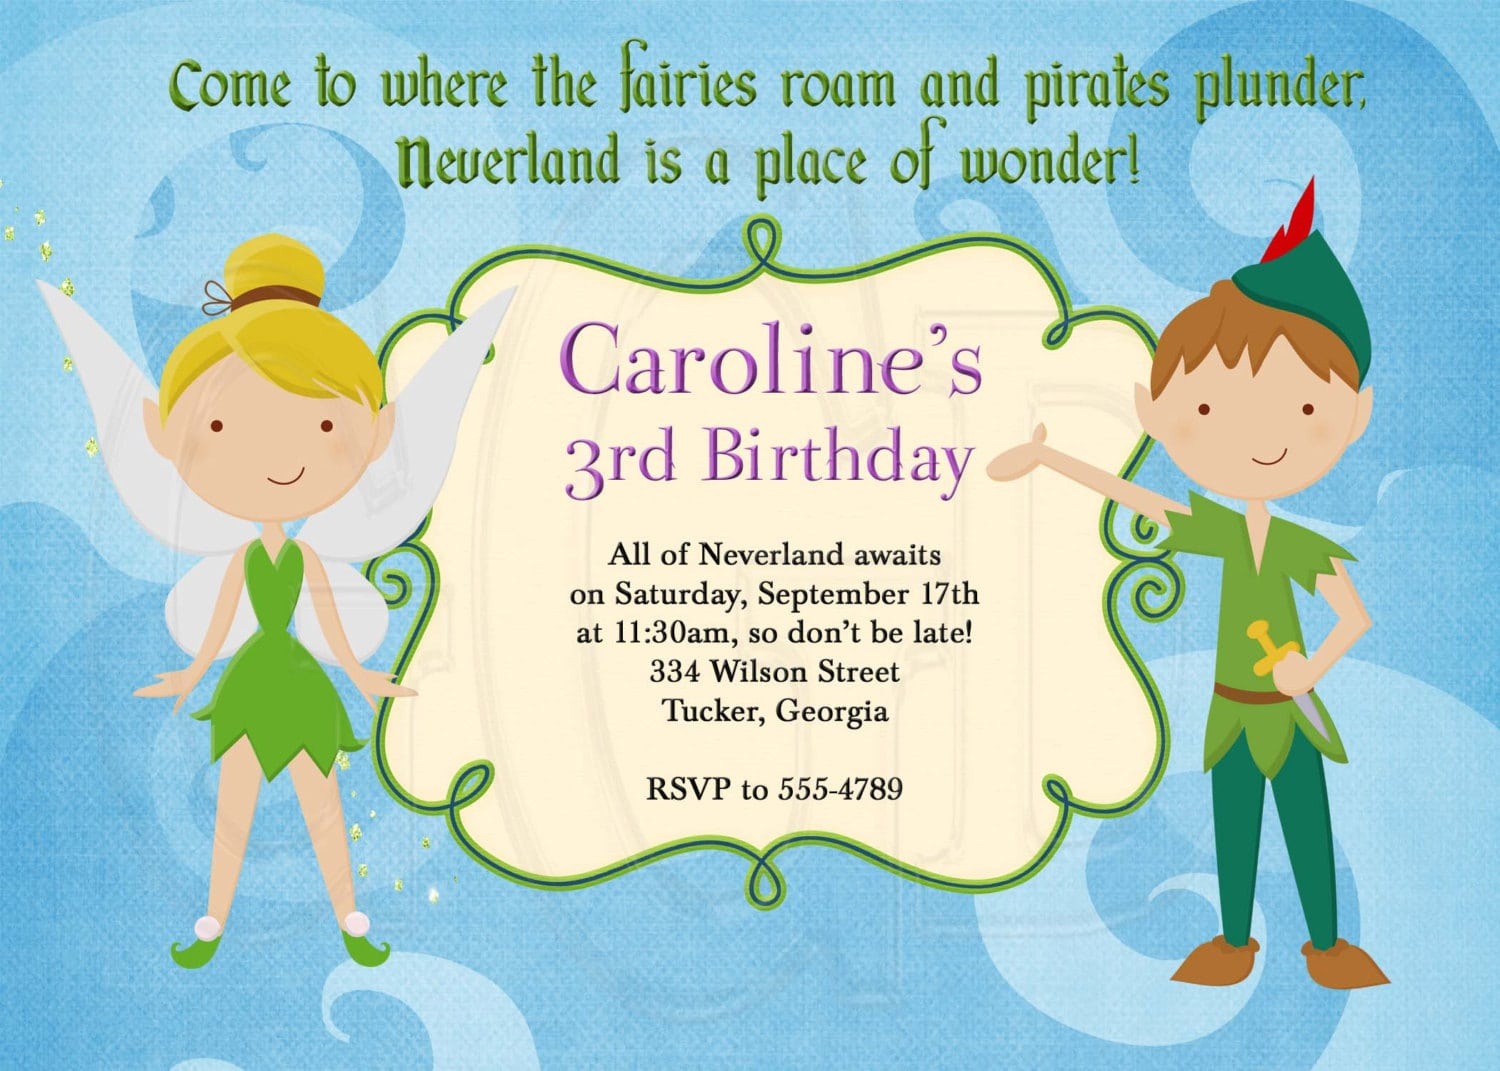 Peter Pan And Tinkerbell Inspired Birthday Invitation